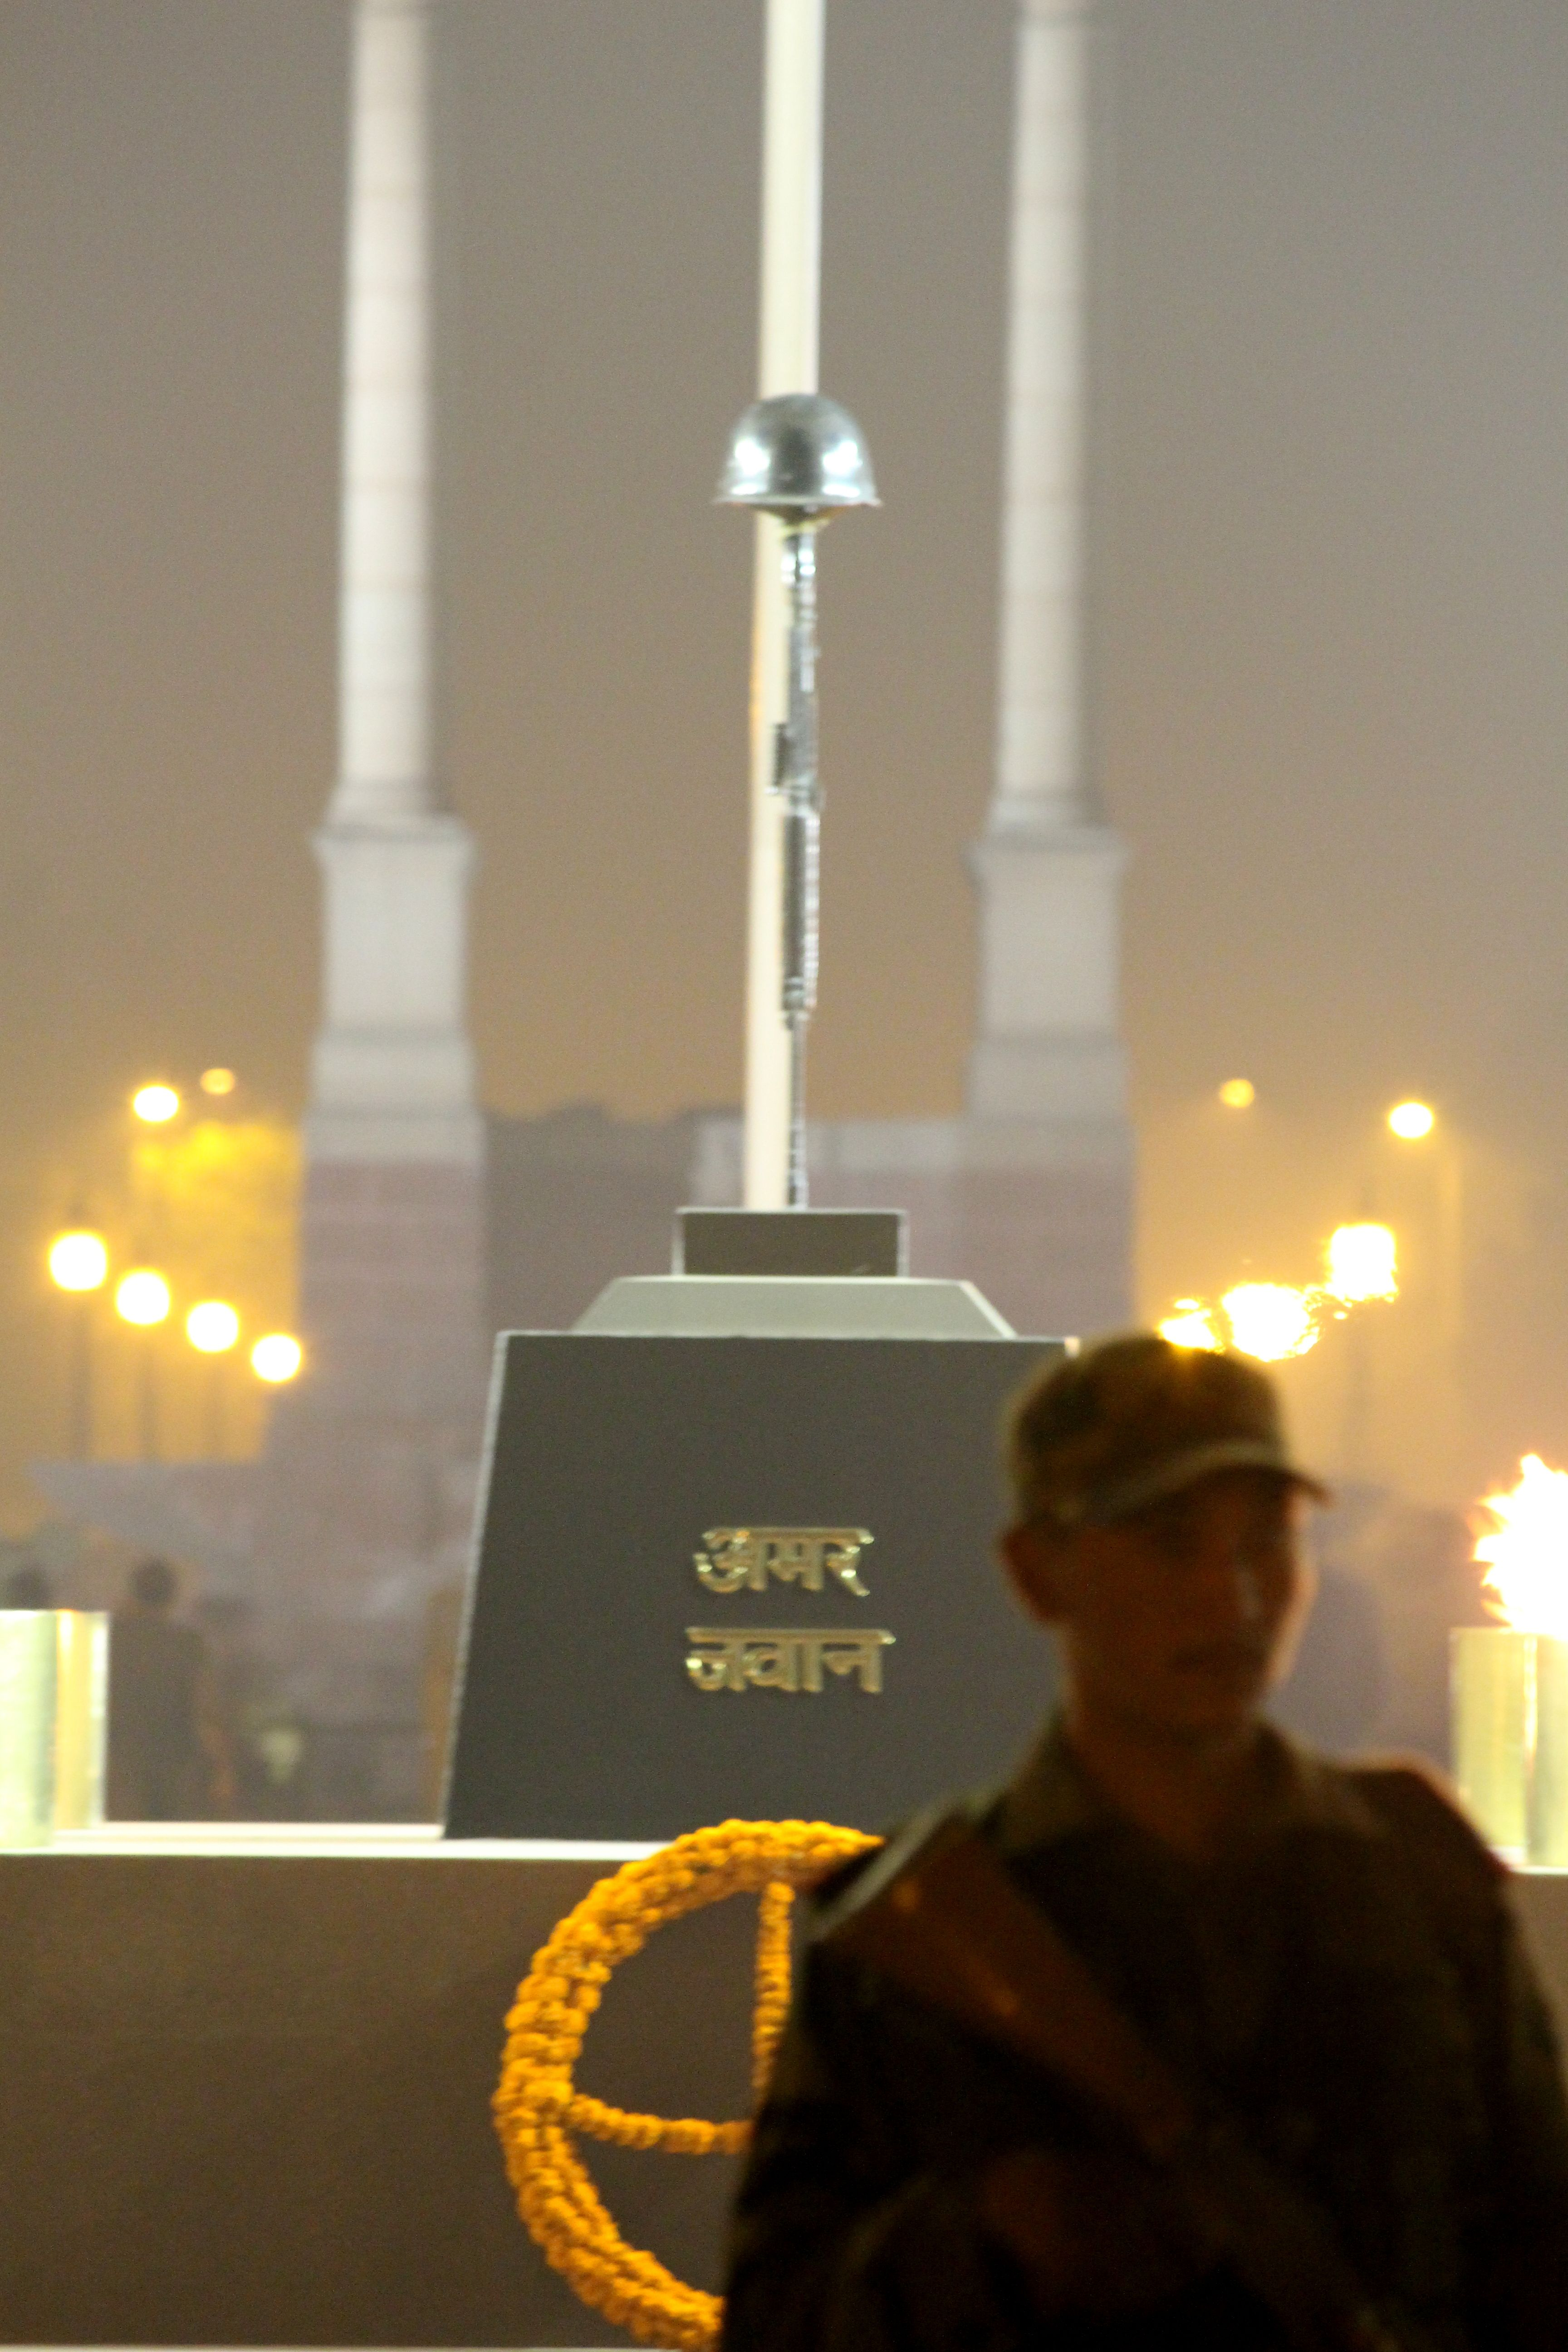 Amar jawan jyoti it is since 1971 that a flame which is often known amar jawan jyoti it is since 1971 that a flame which is often known as amar altavistaventures Image collections